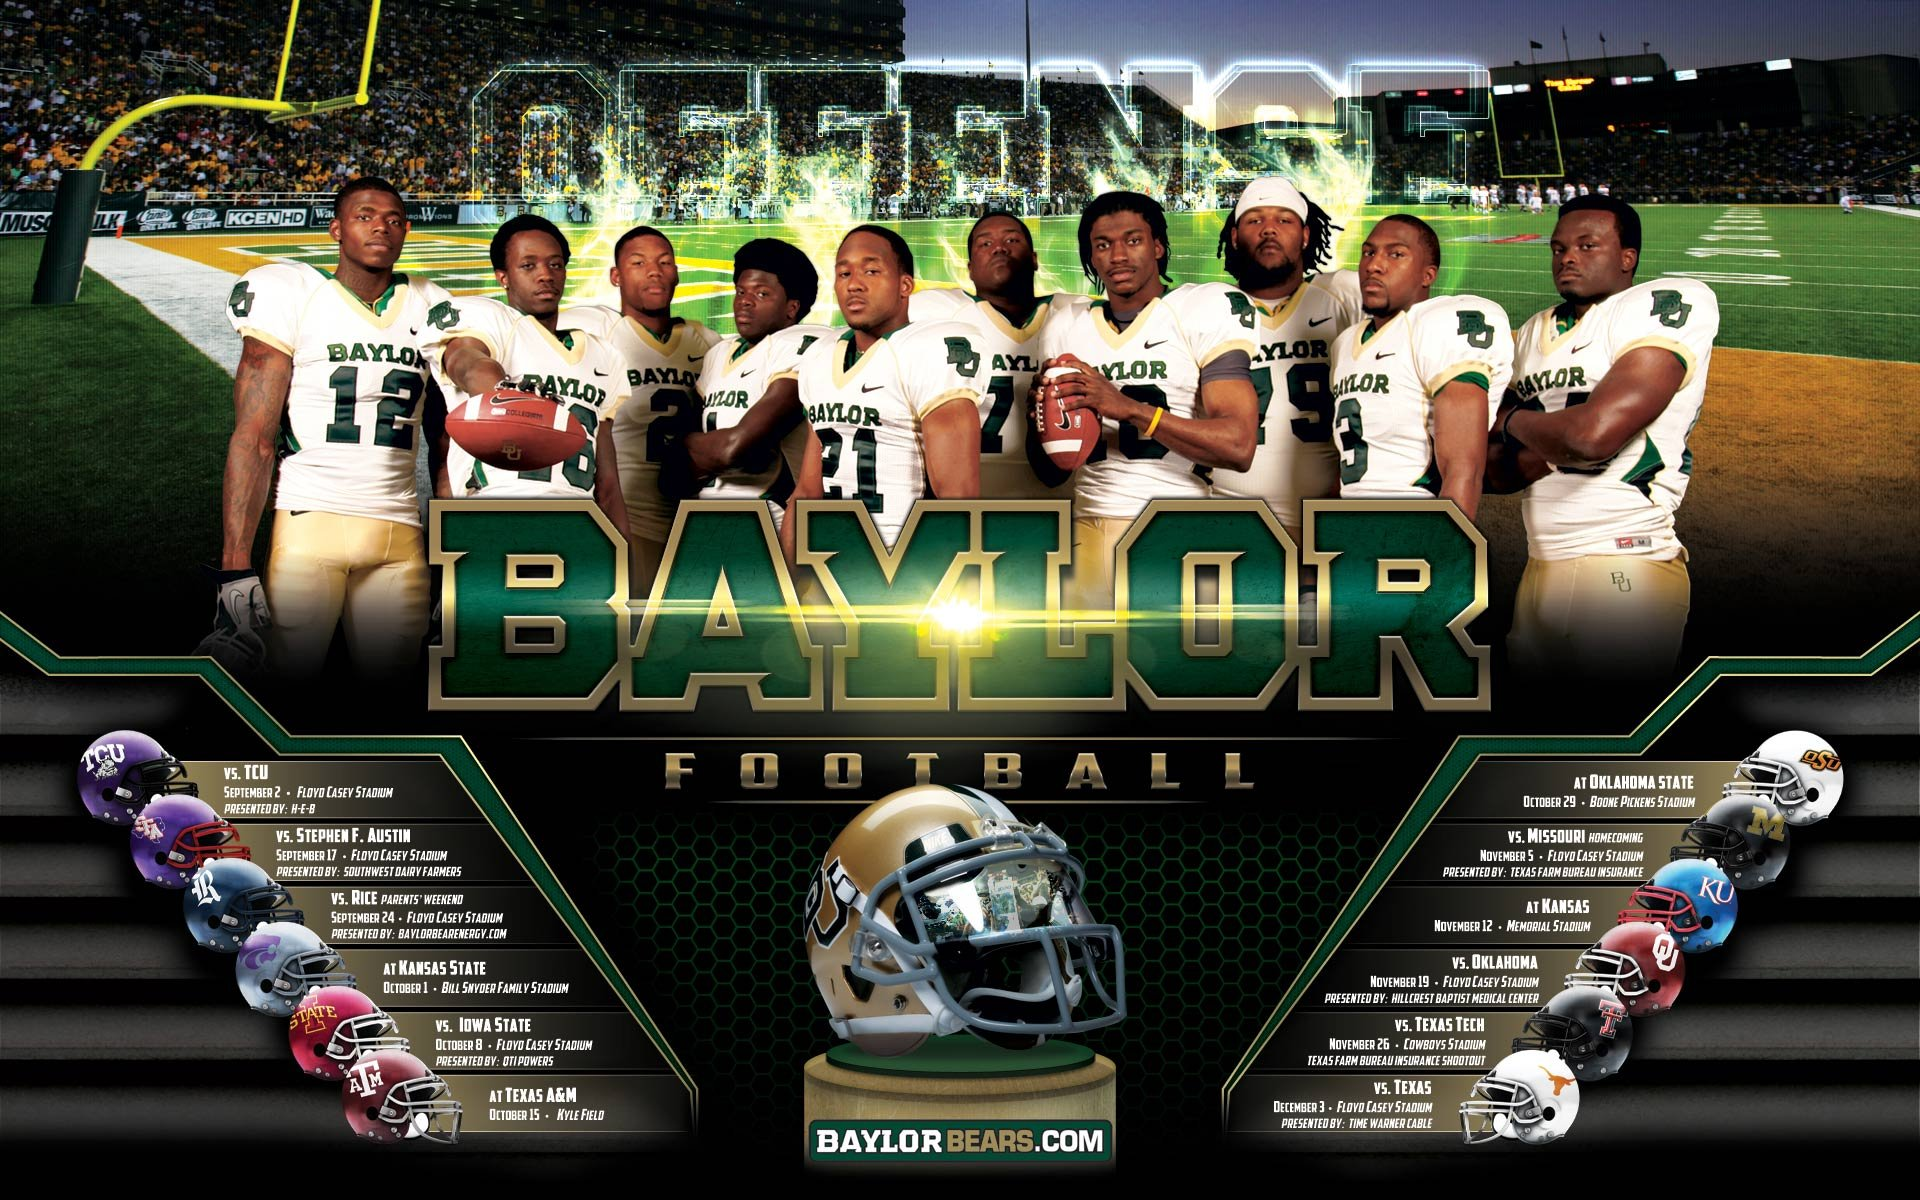 BAYLOR BEARS college football wallpaper 1920x1200 1920x1200